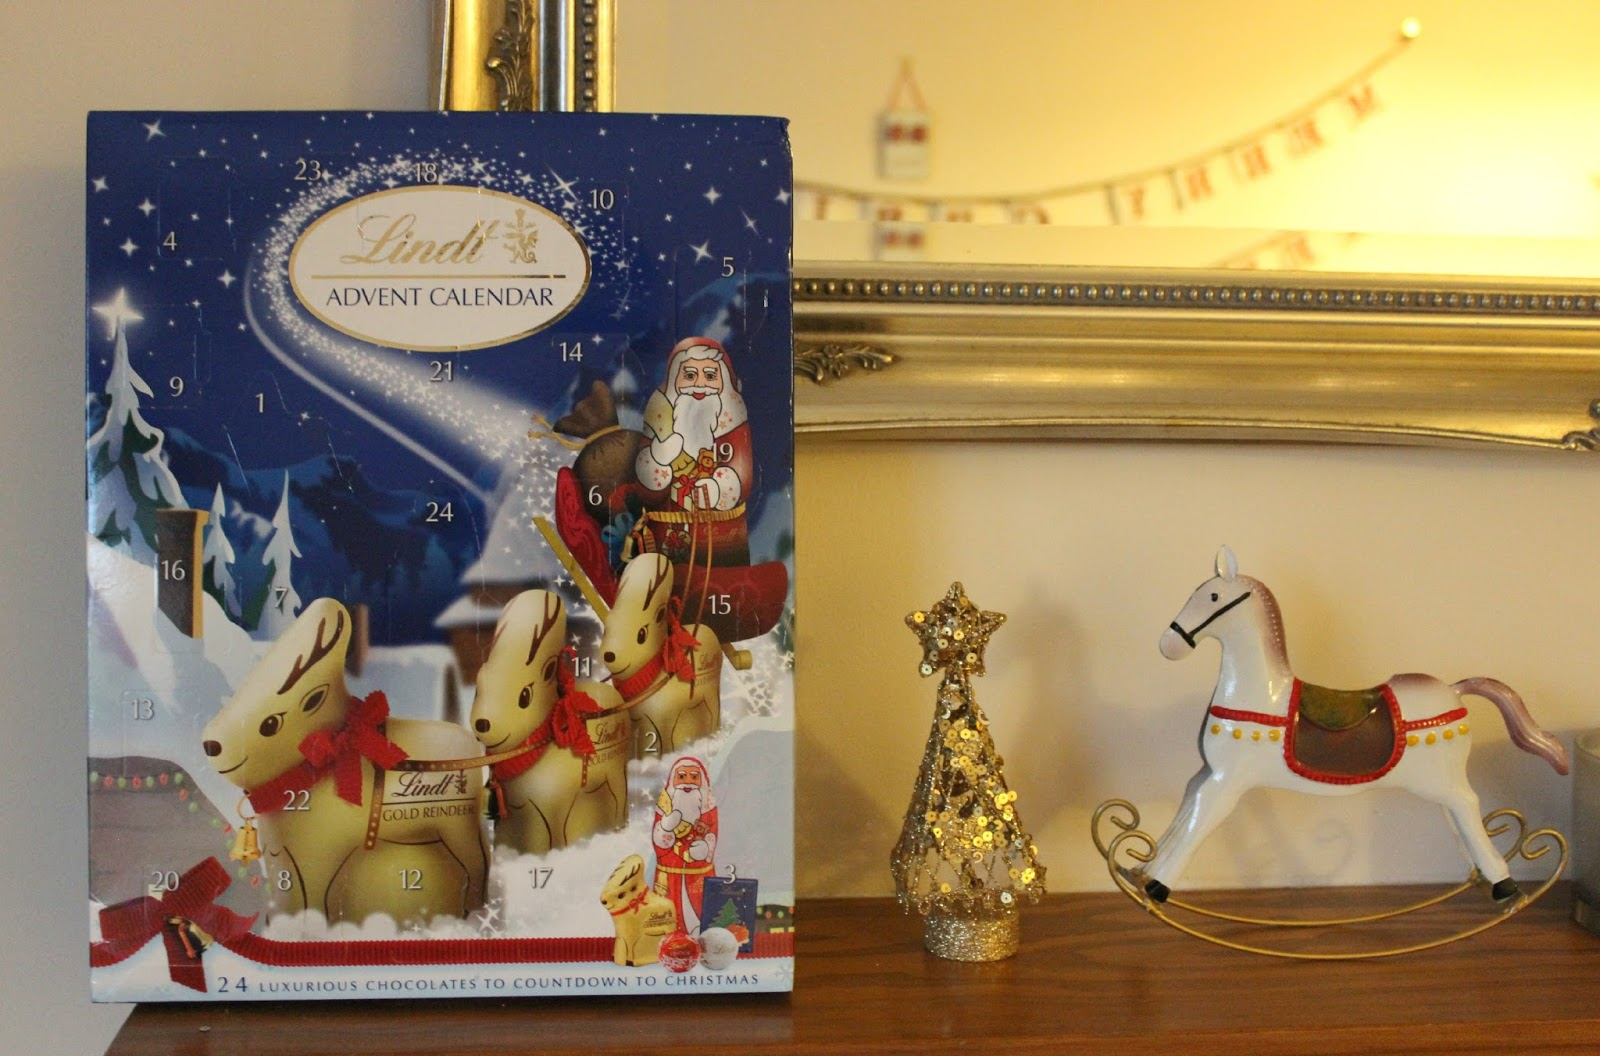 A picture of the Lindt Advent Calendar